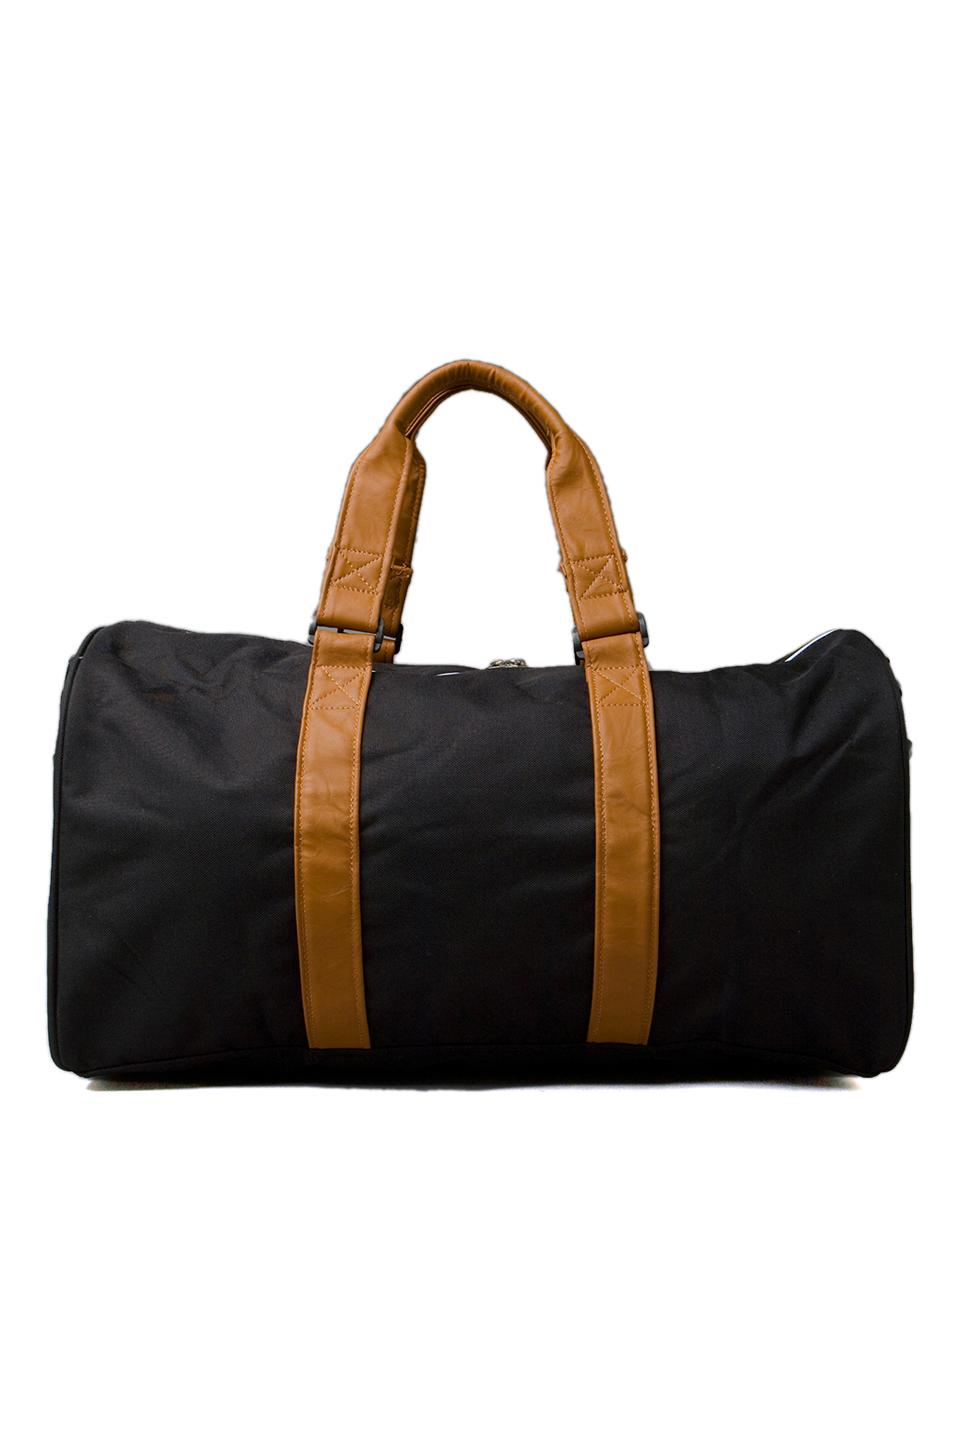 Herschel Supply Co. Ravine Duffle in Black/Brown